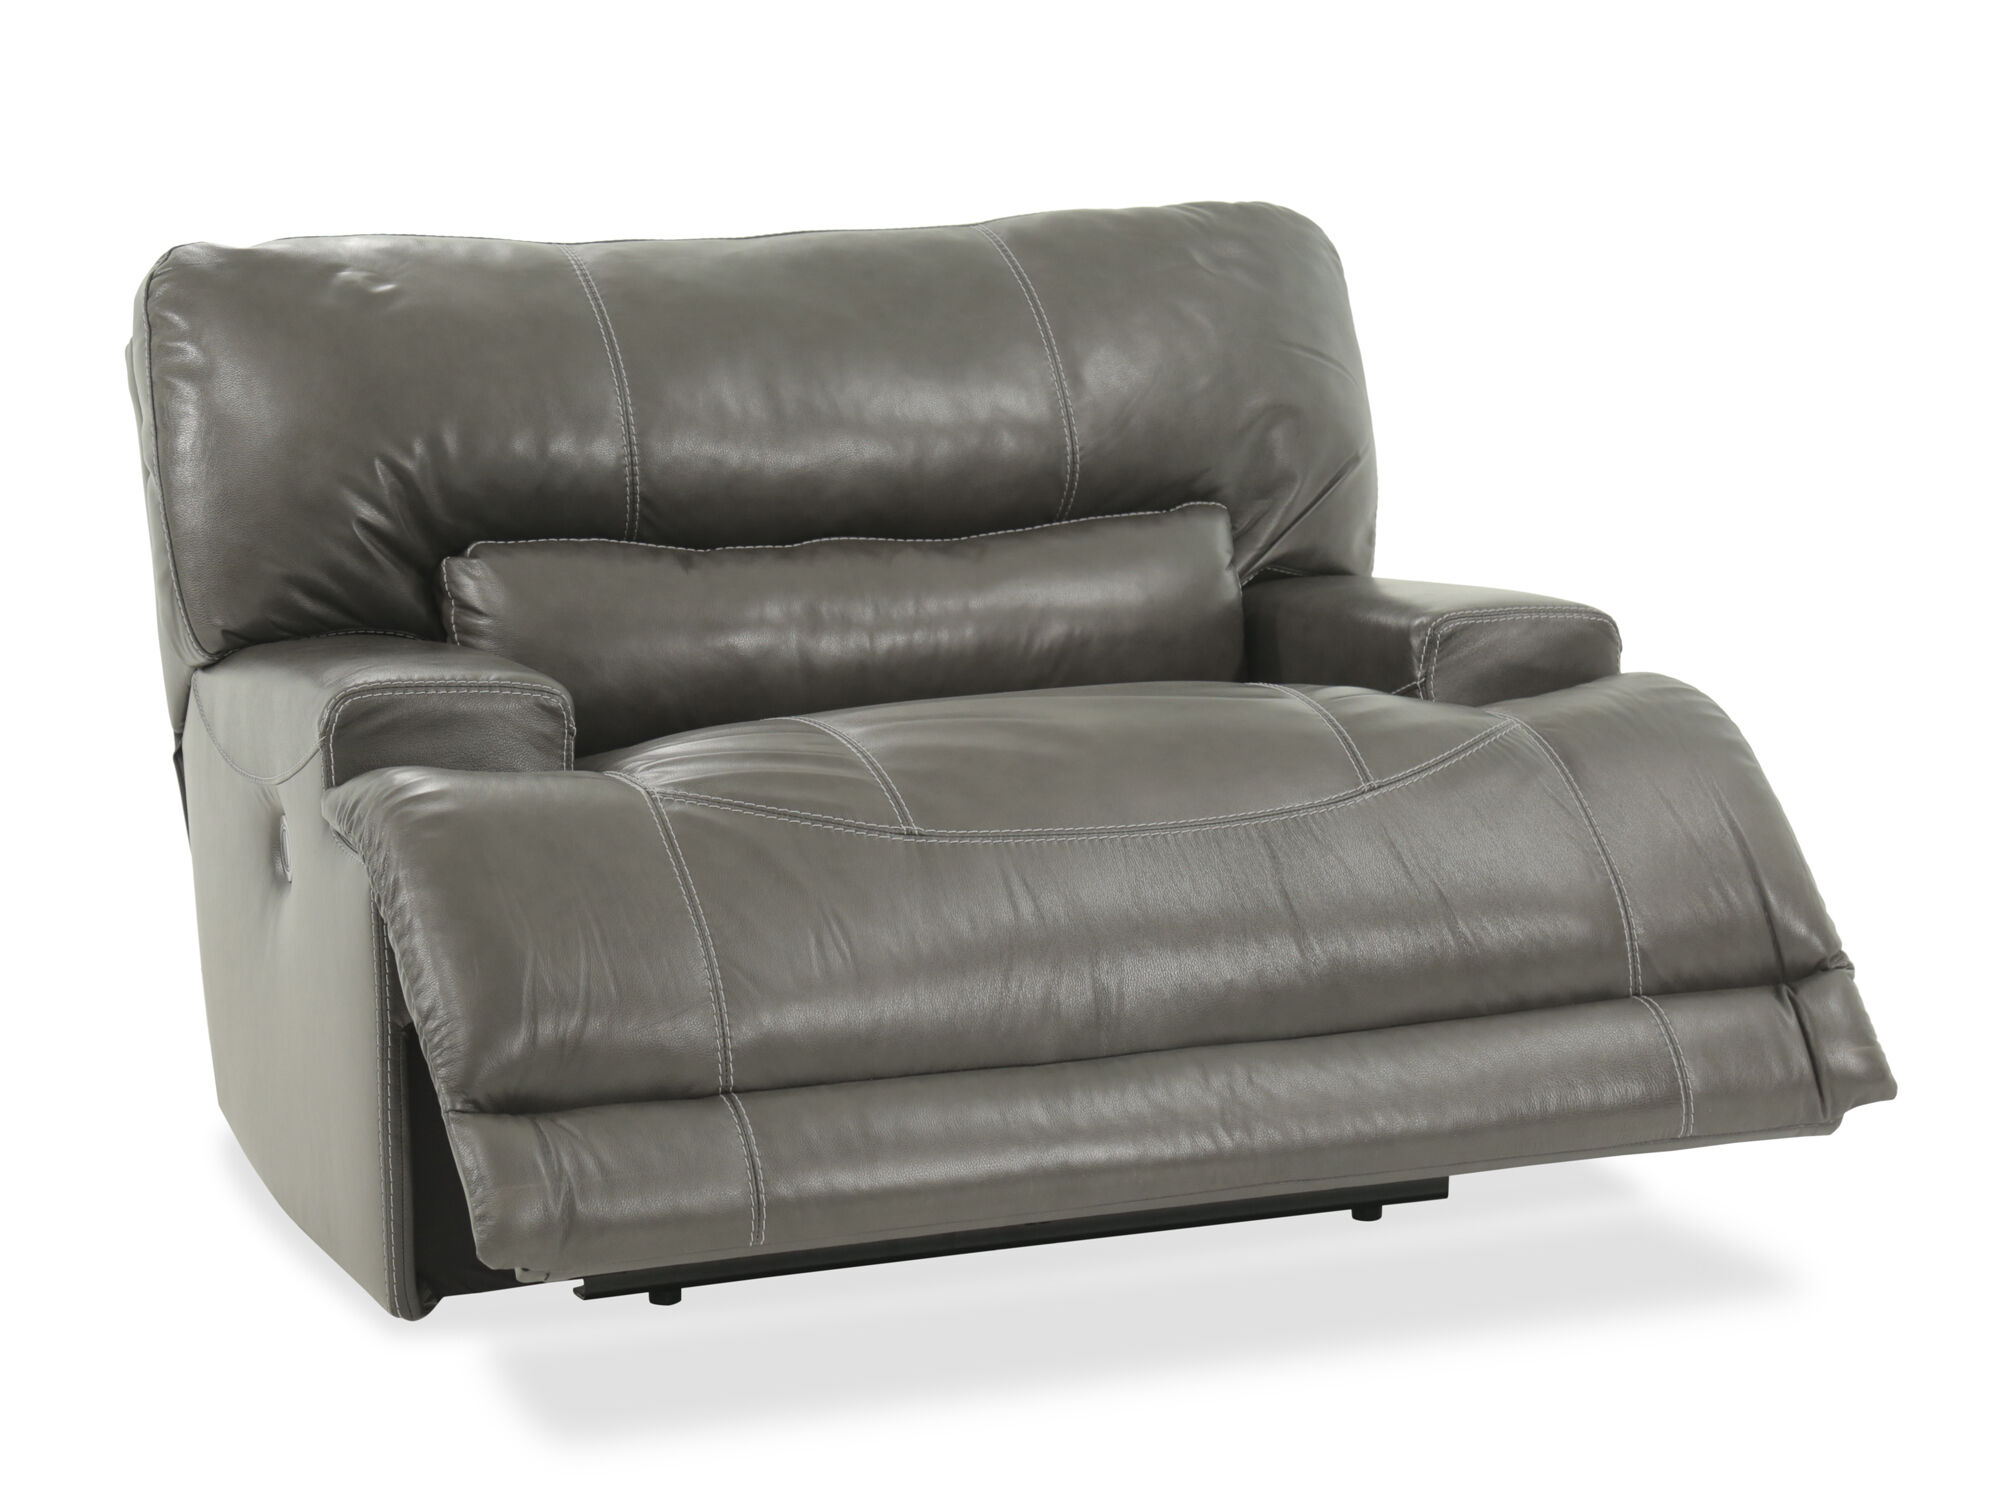 Grey Oversized Chair Oversized Power Recliner In Gray Mathis Brothers Furniture